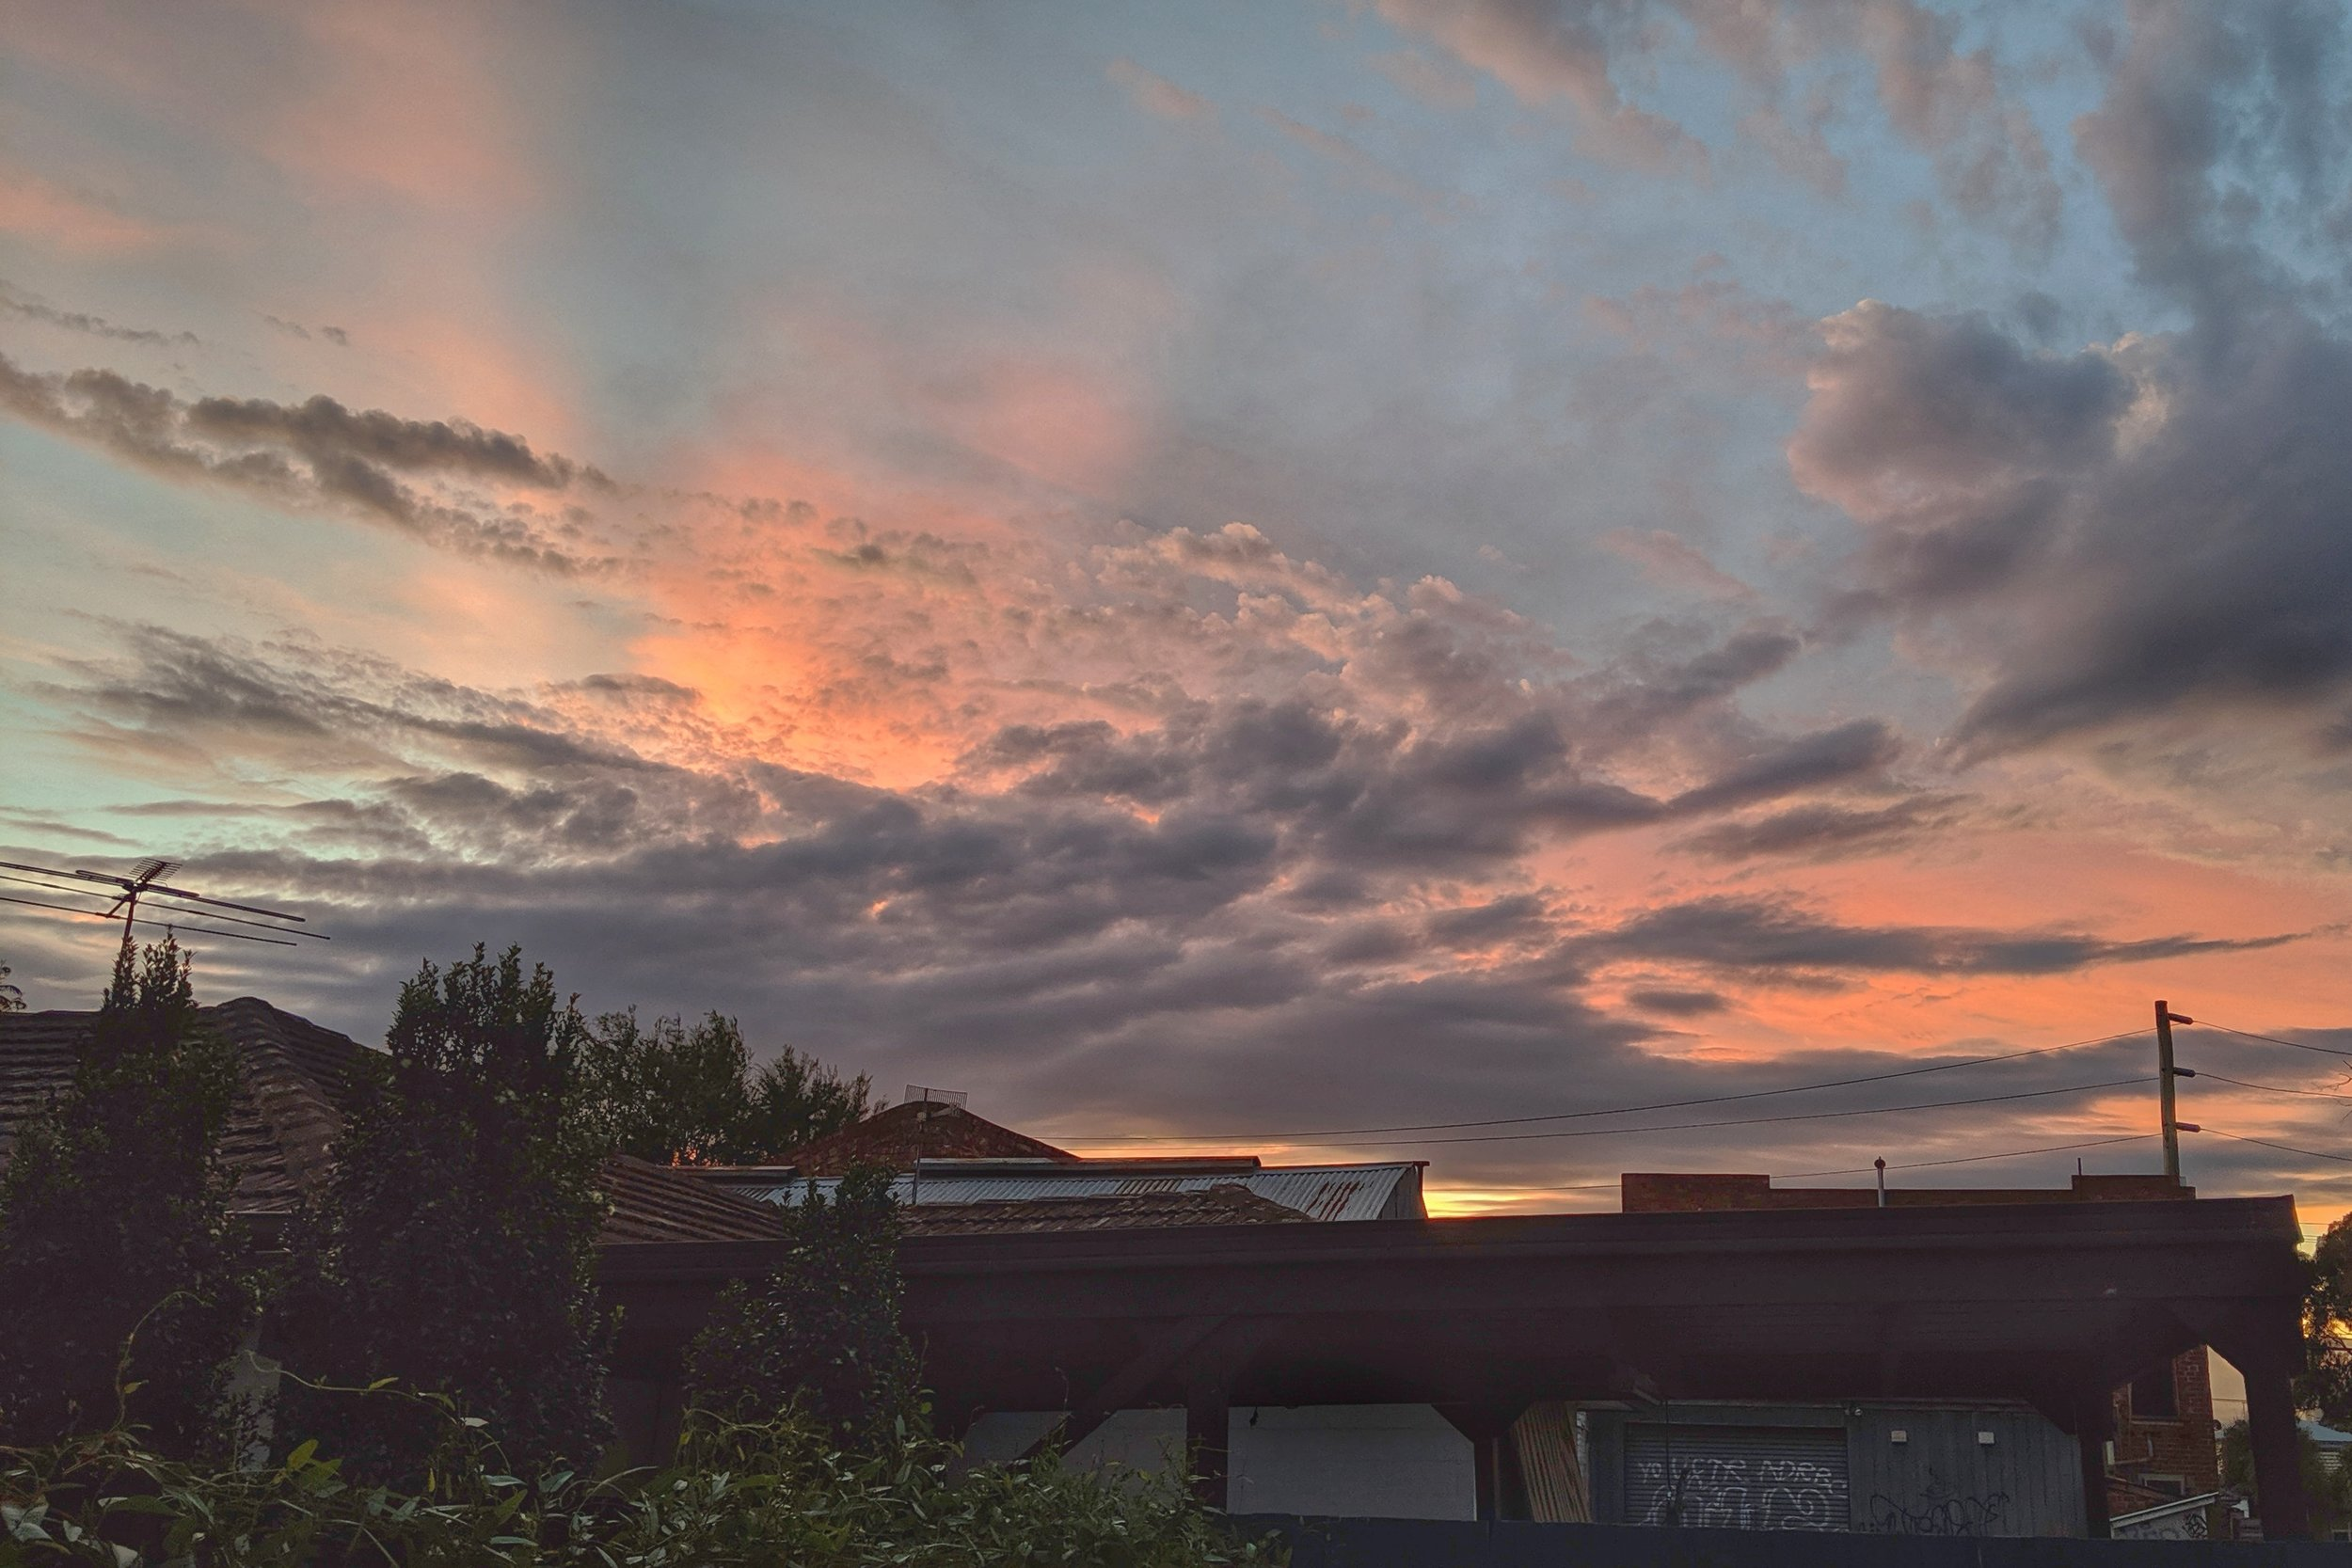 Peach-pink sunset behind the clouds, above the rooftops.